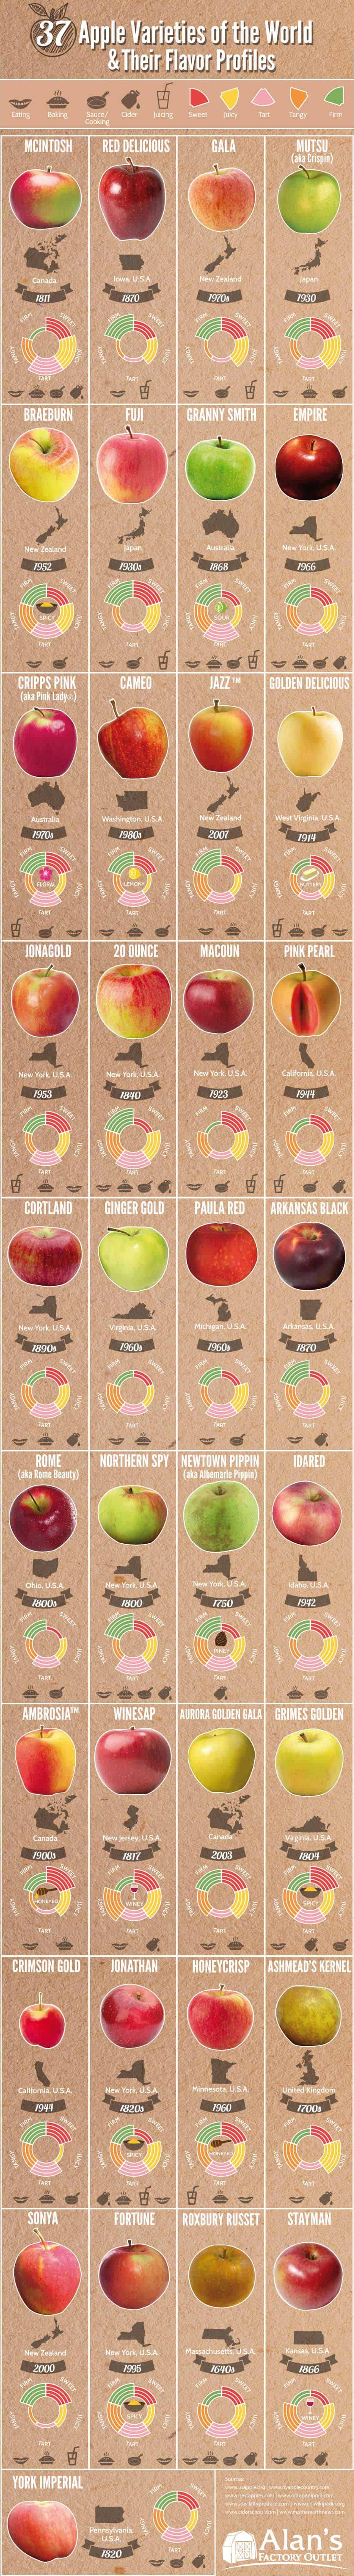 Apple varieties and what they're used for